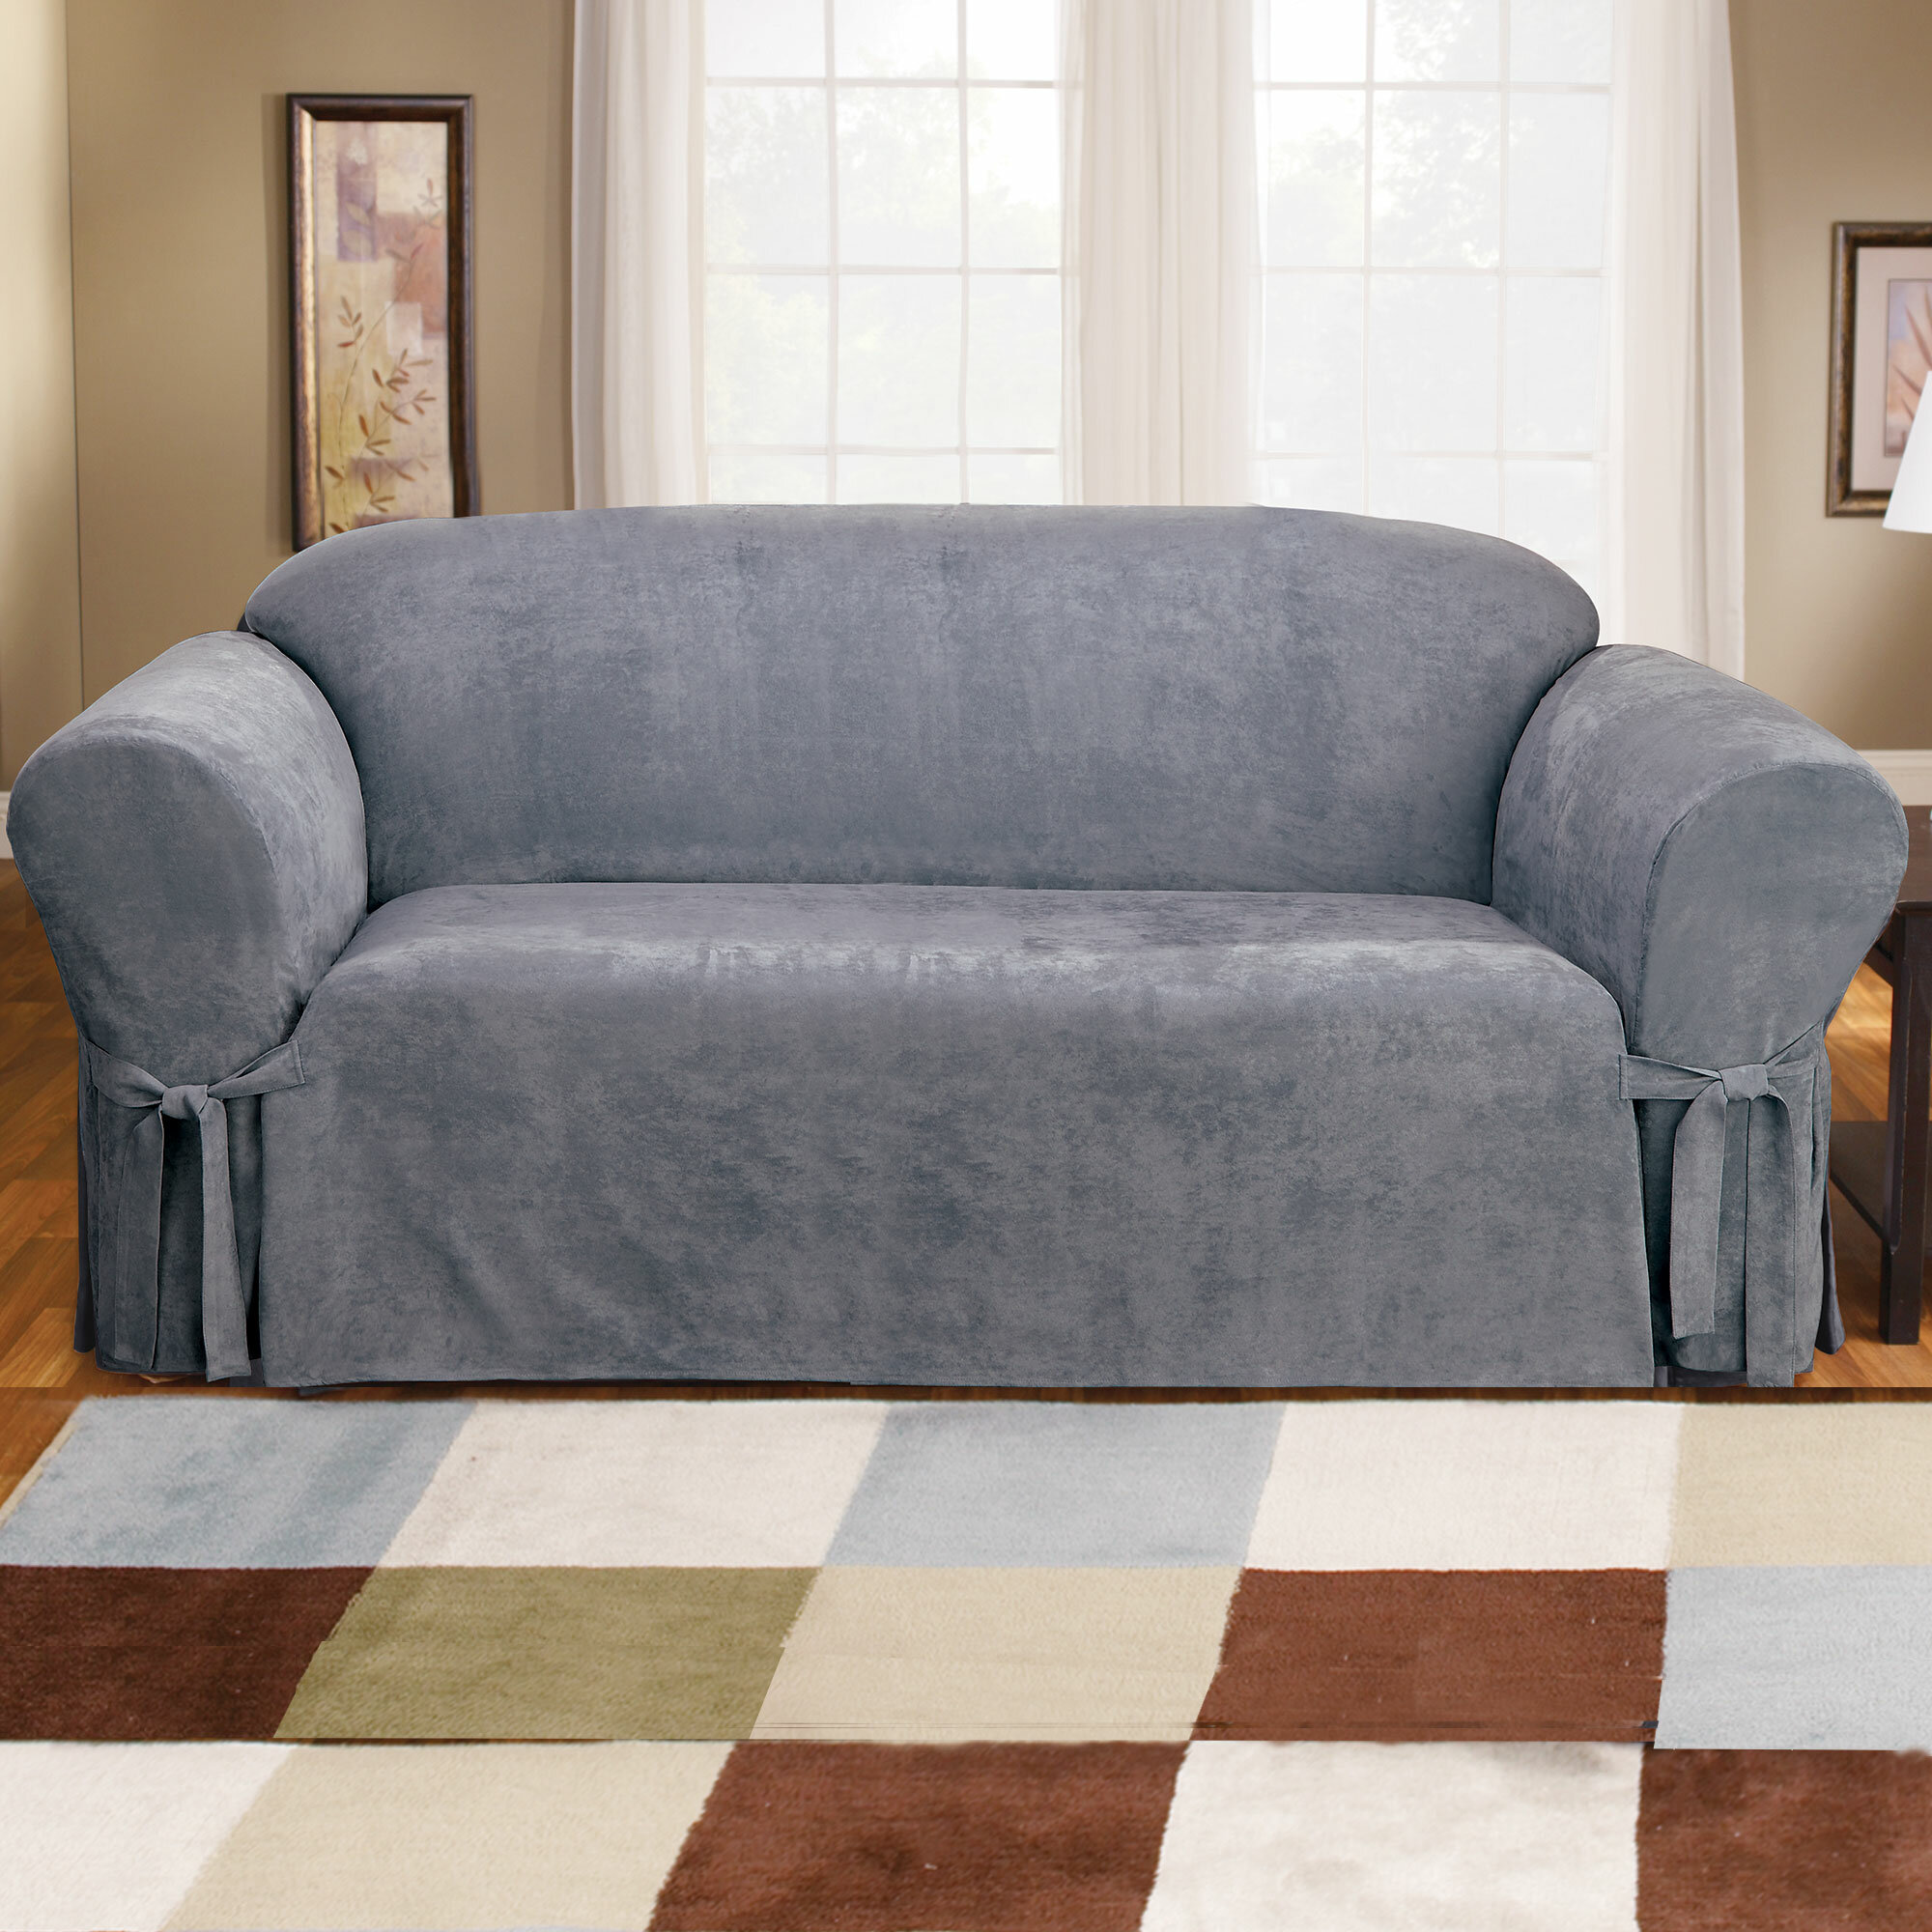 NEW Sure Fit Cozy Twill with Suprelle SOFA  Furniture Cover storm blue